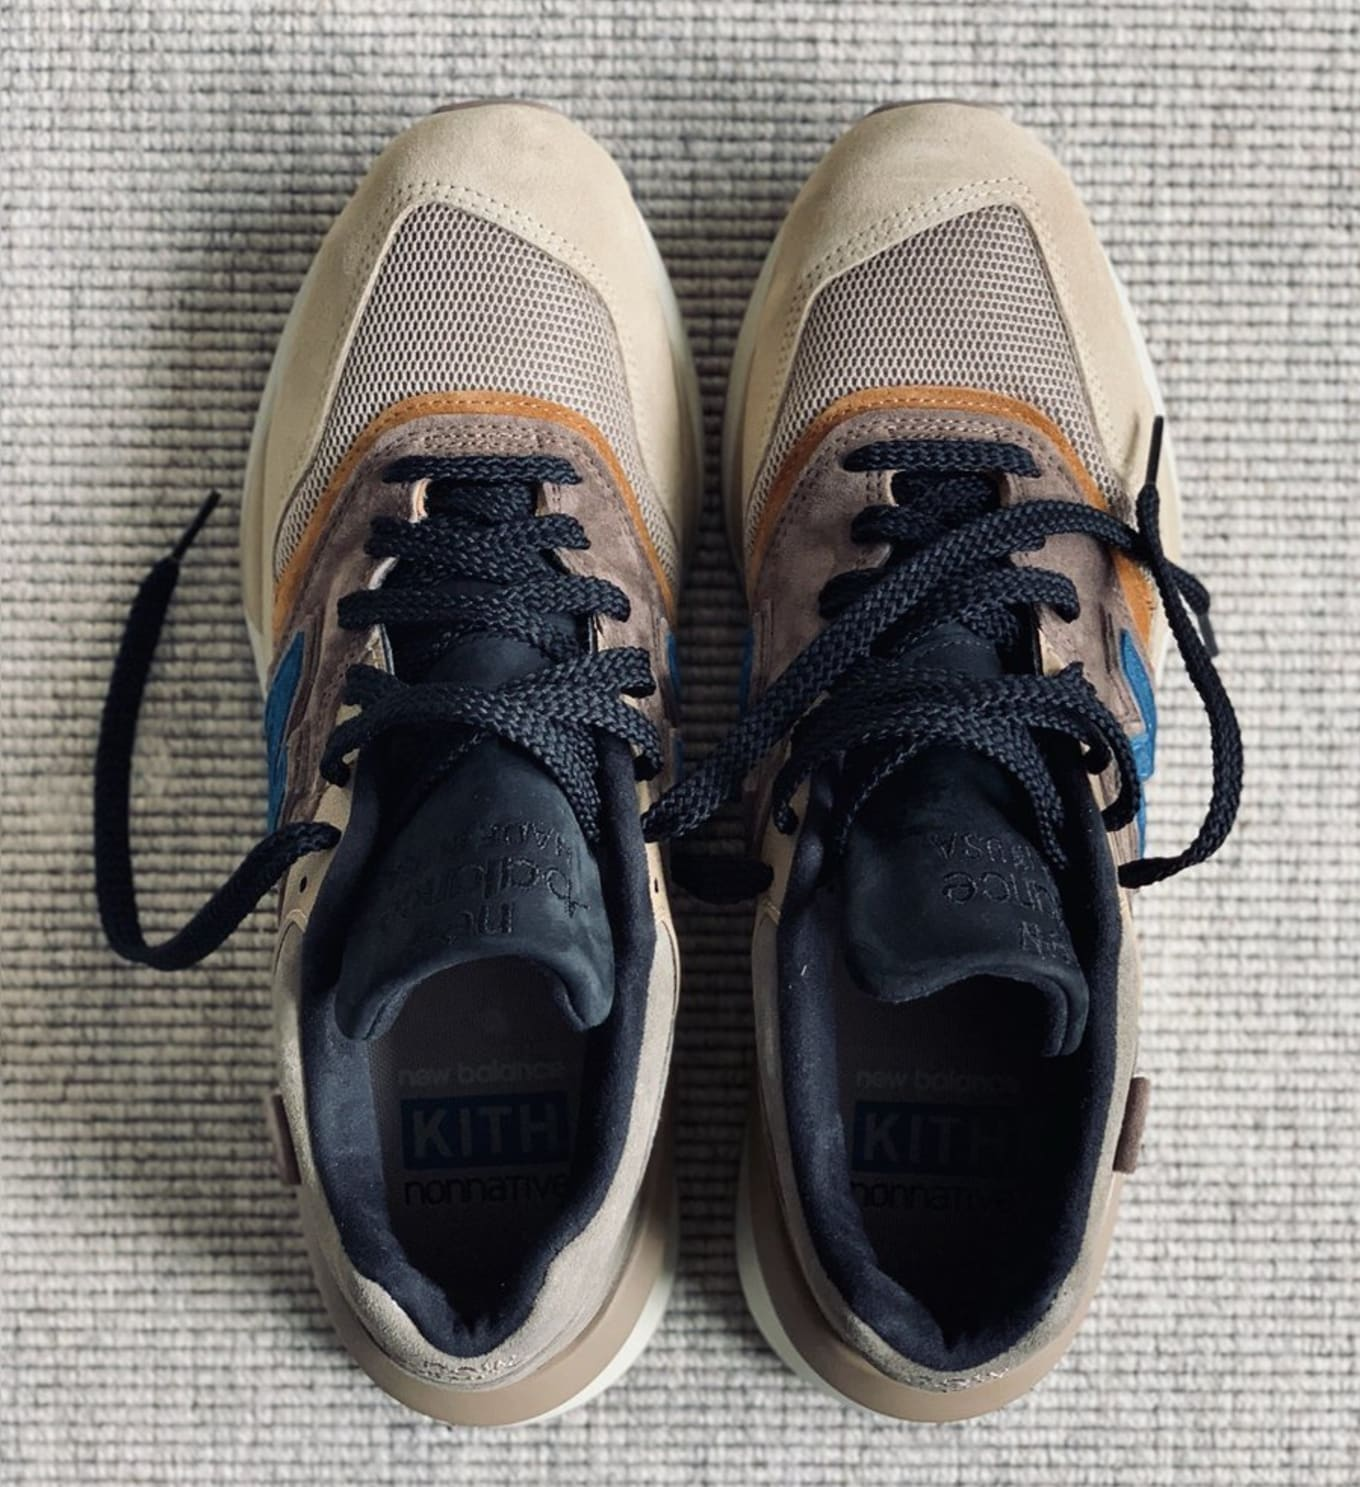 2fdccb3a67a03 Ronnie Fieg's Letting Loyal Customers Buy His Latest Collab Early